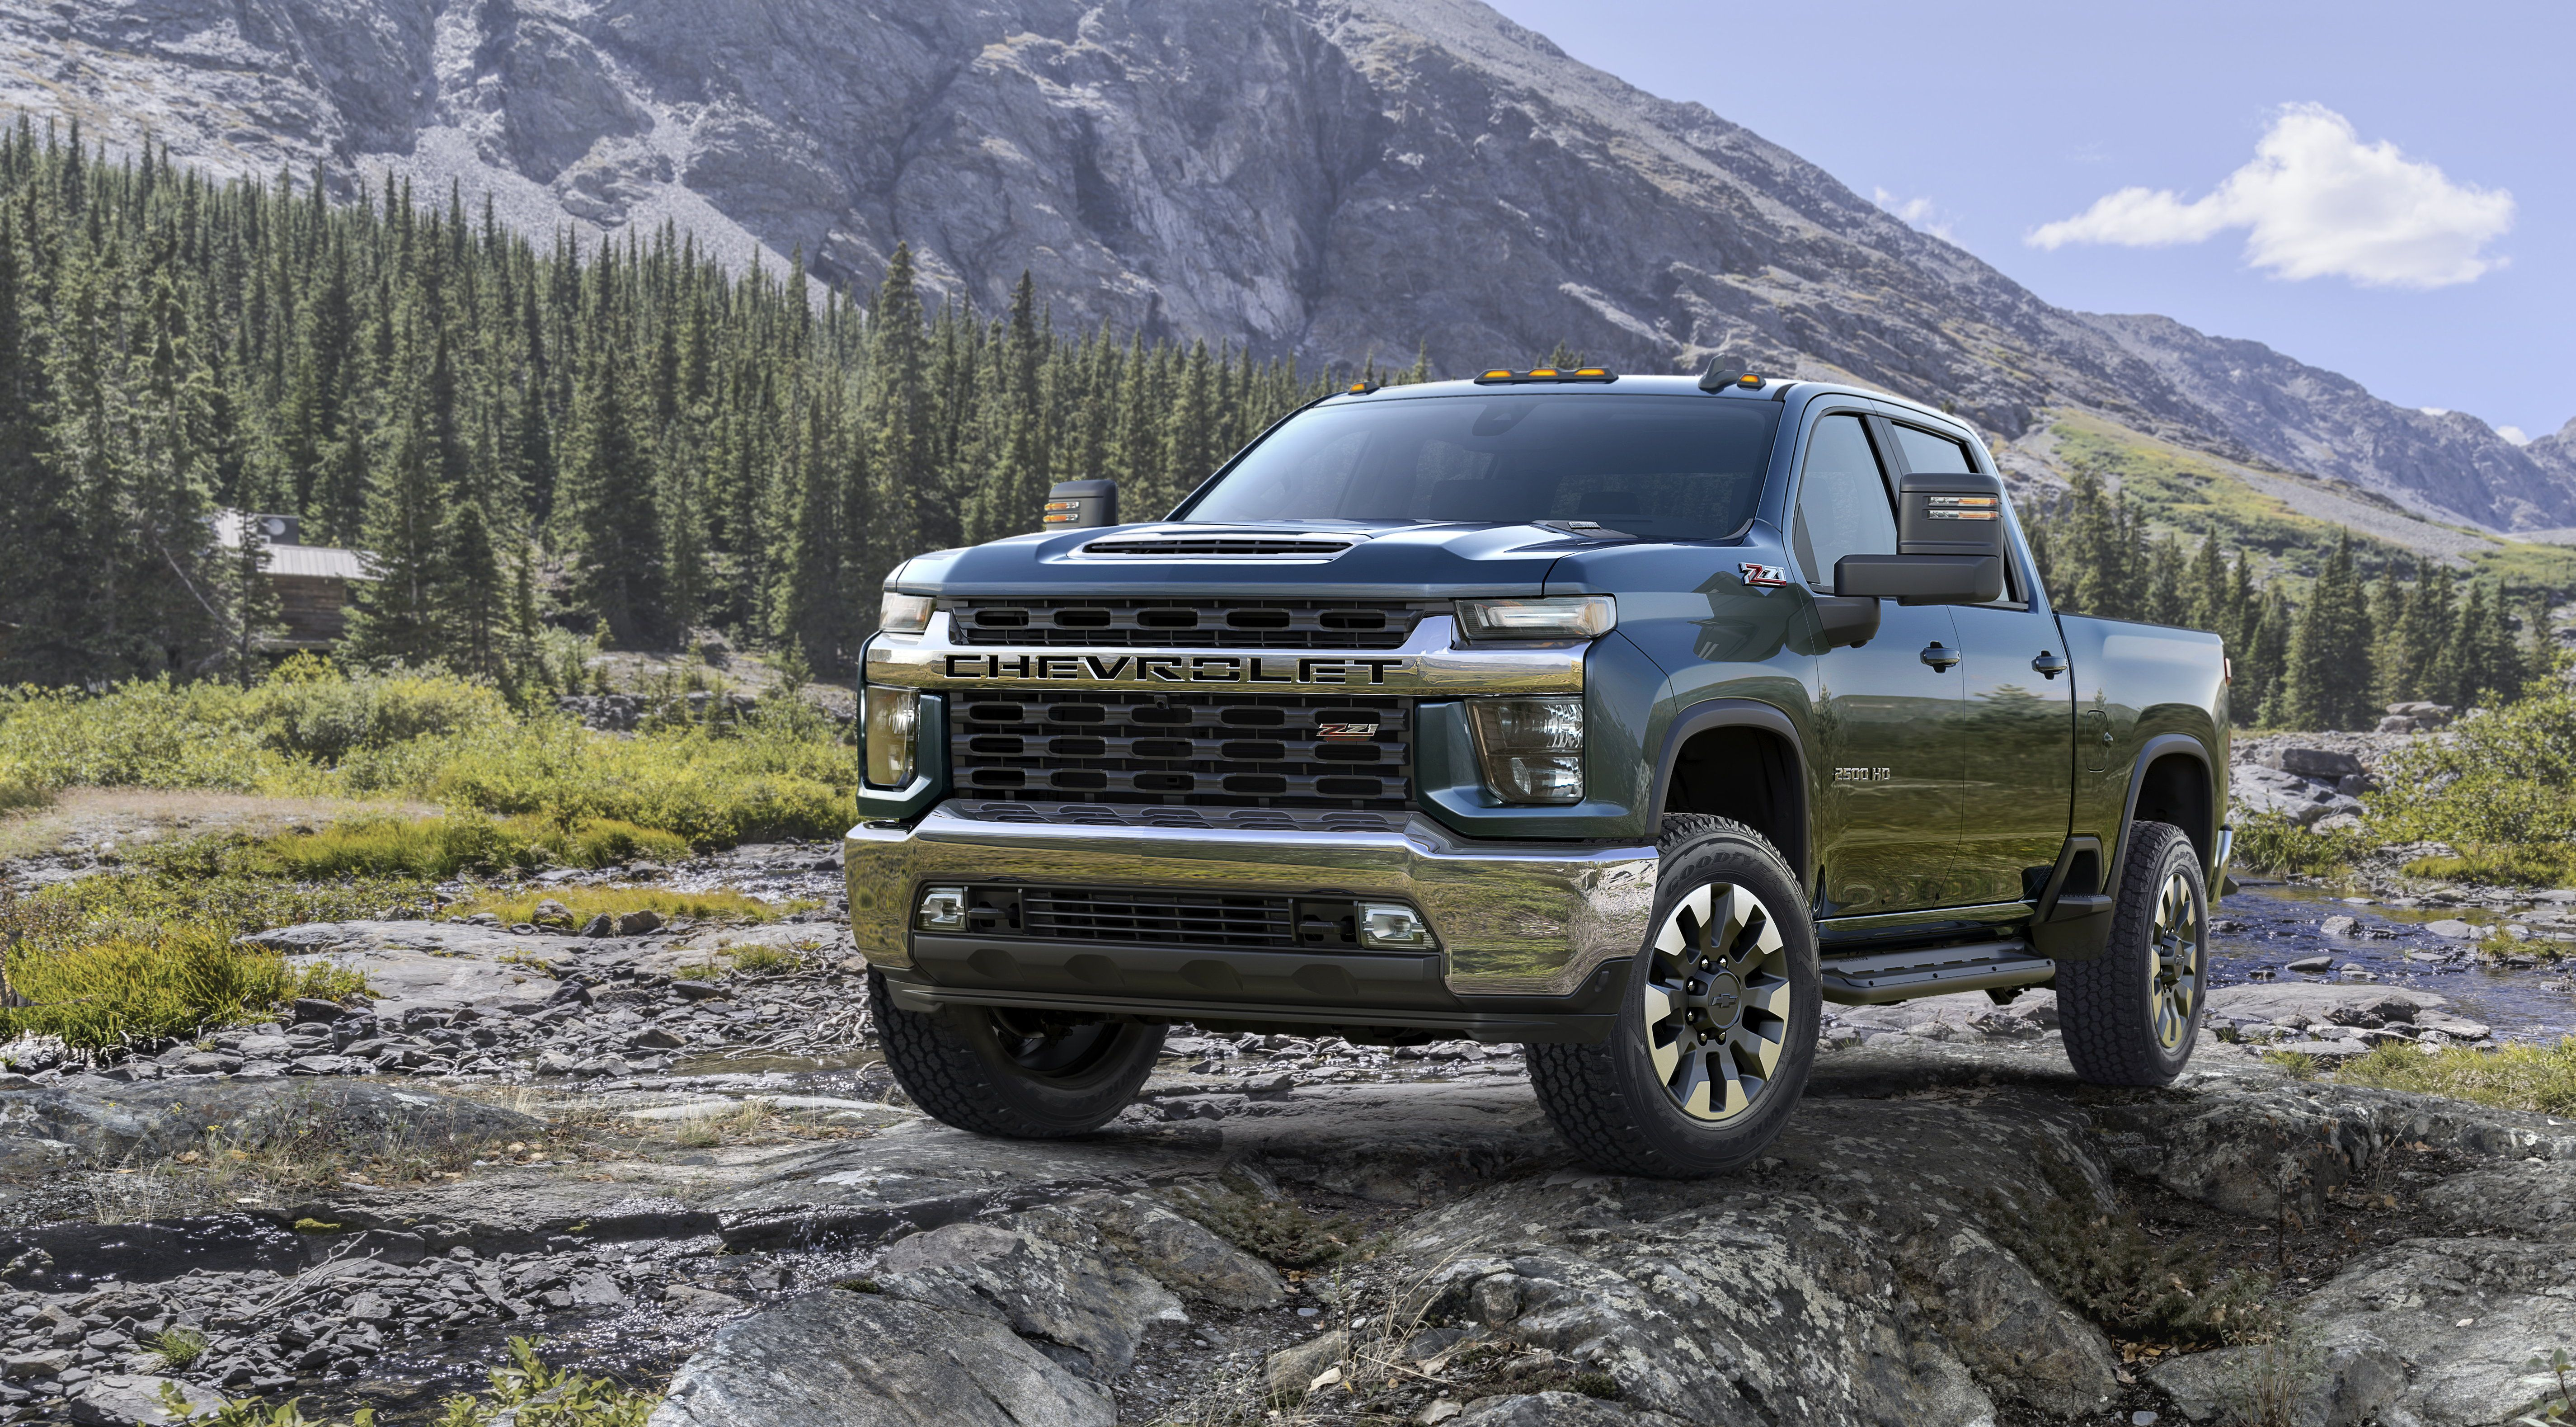 34 Off-Road-Ready Trucks, SUVs, and Crossovers in 2019 – 4WD Rigs